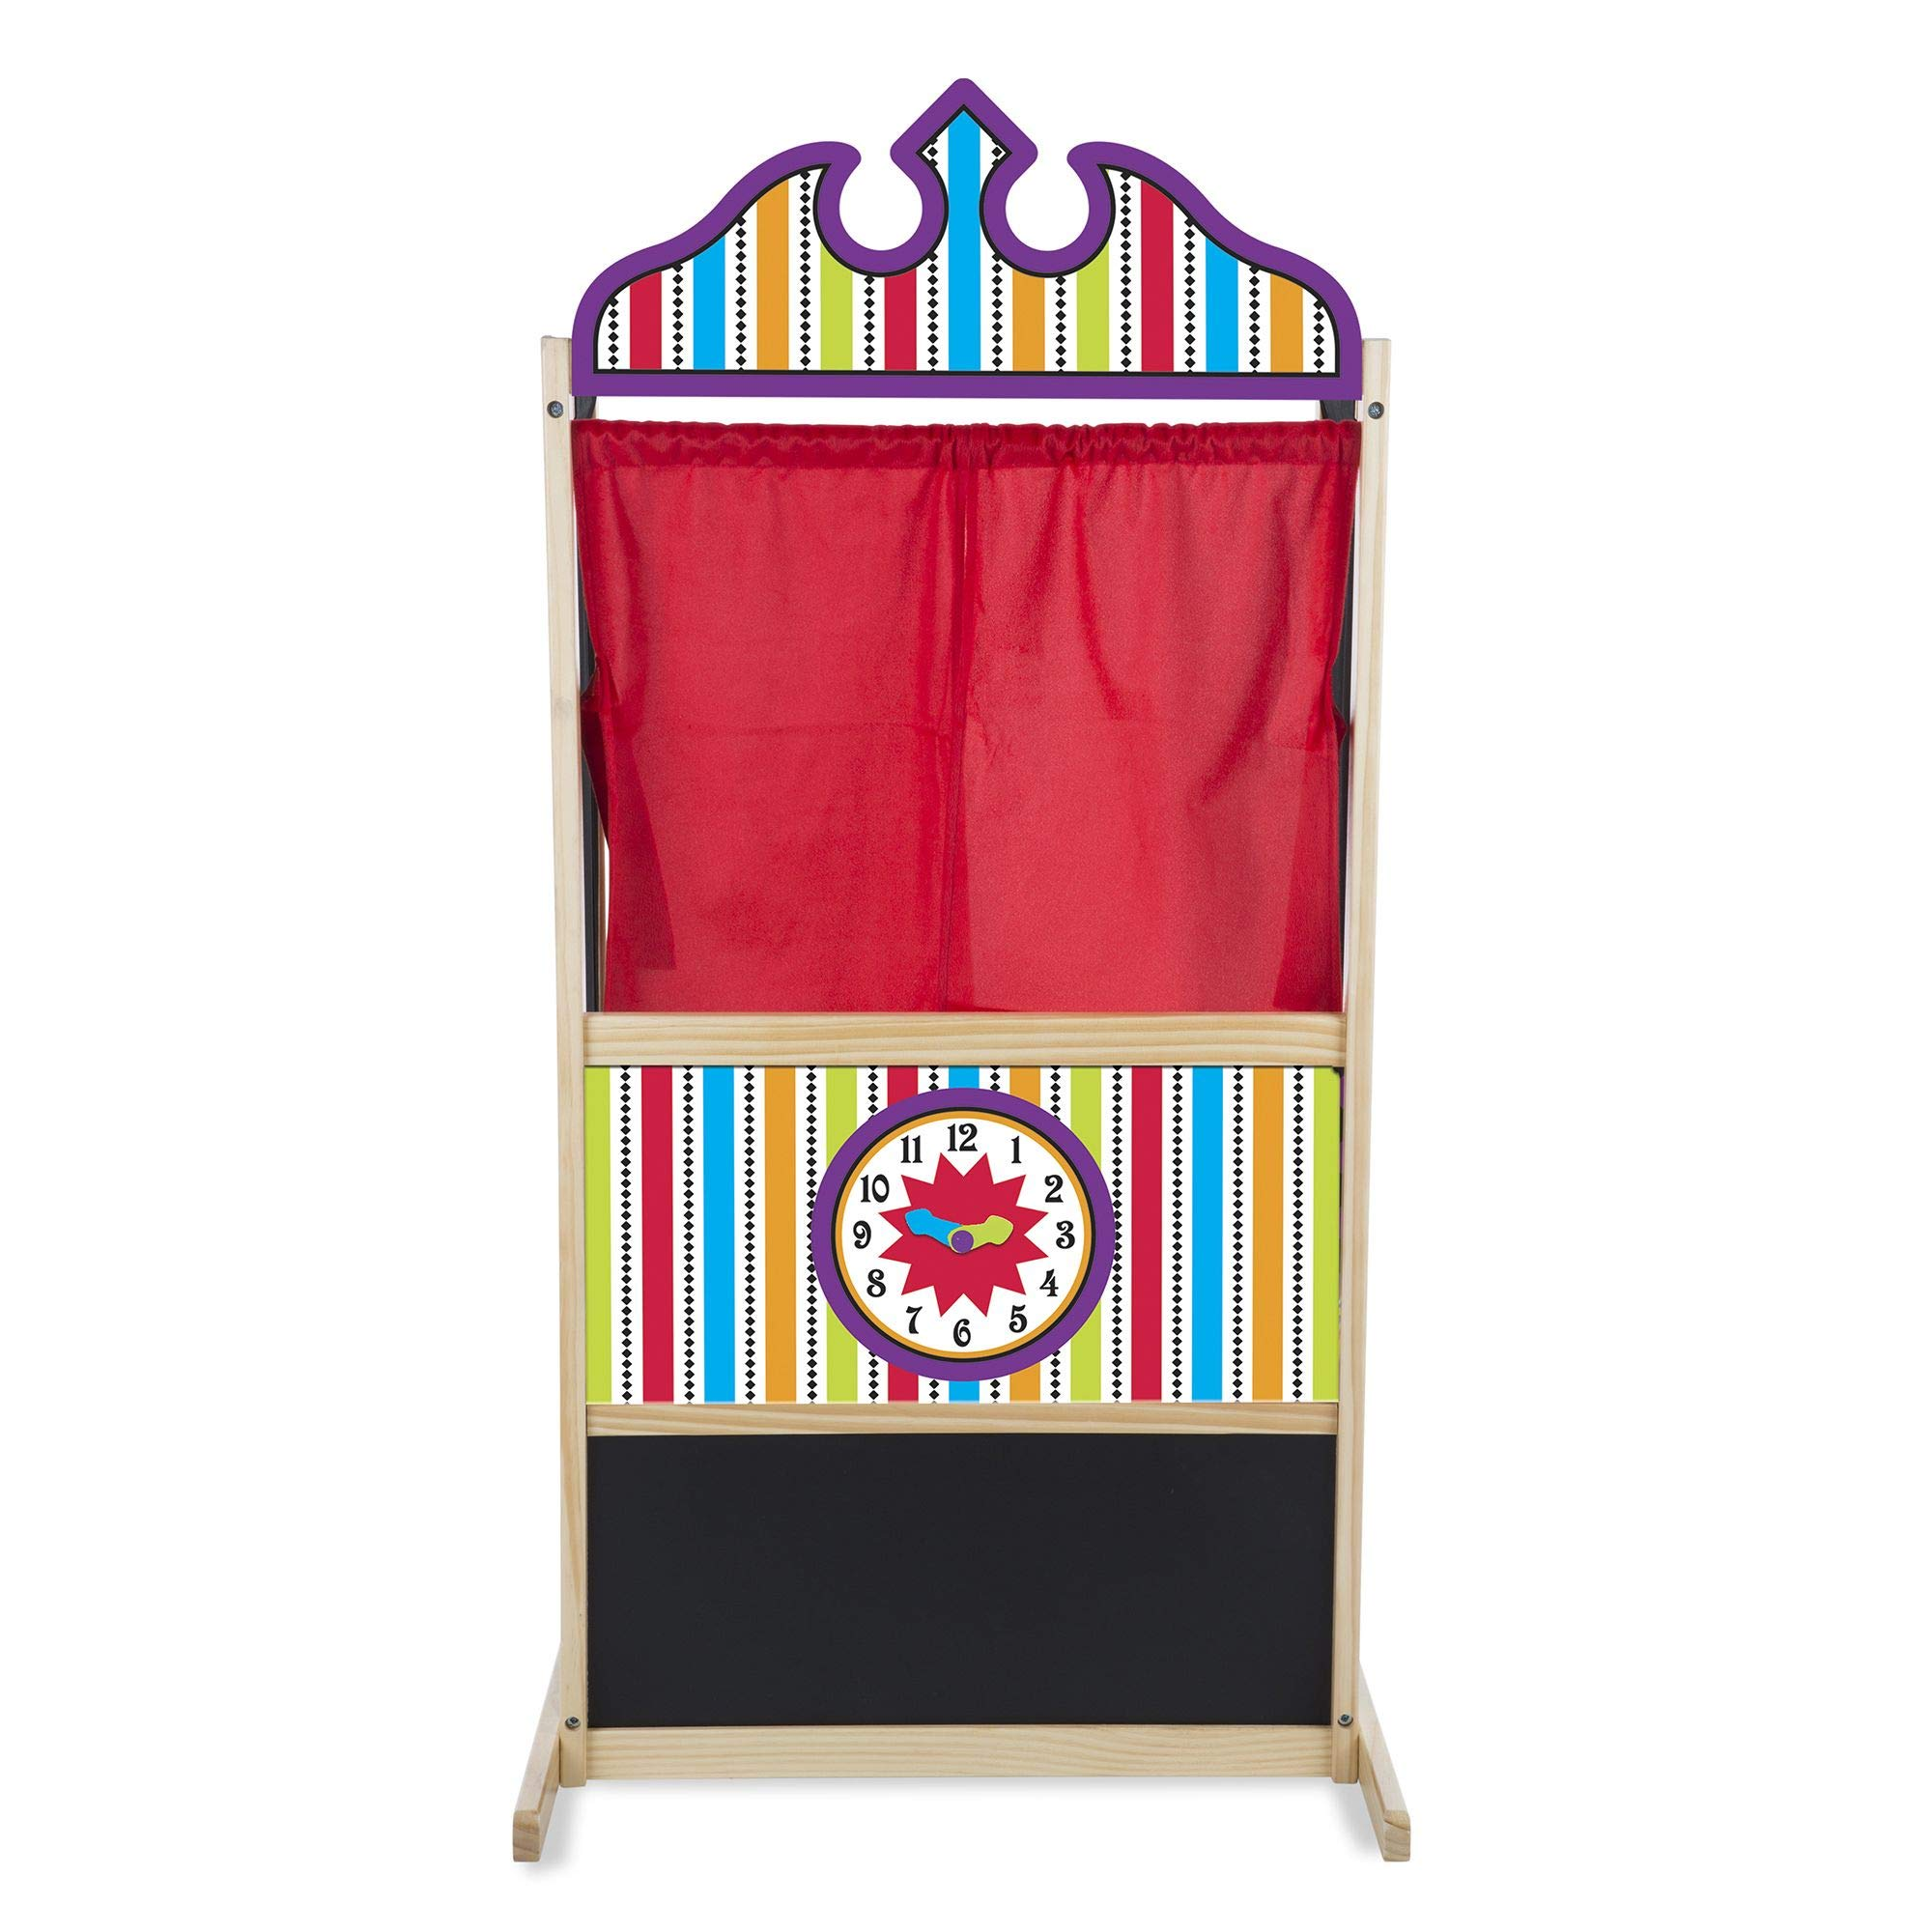 Melissa & Doug Deluxe Puppet Theater, Sturdy Non-Tip Base, Plush Curtains, 52 ″ H × 18″ W × 24.75″ L